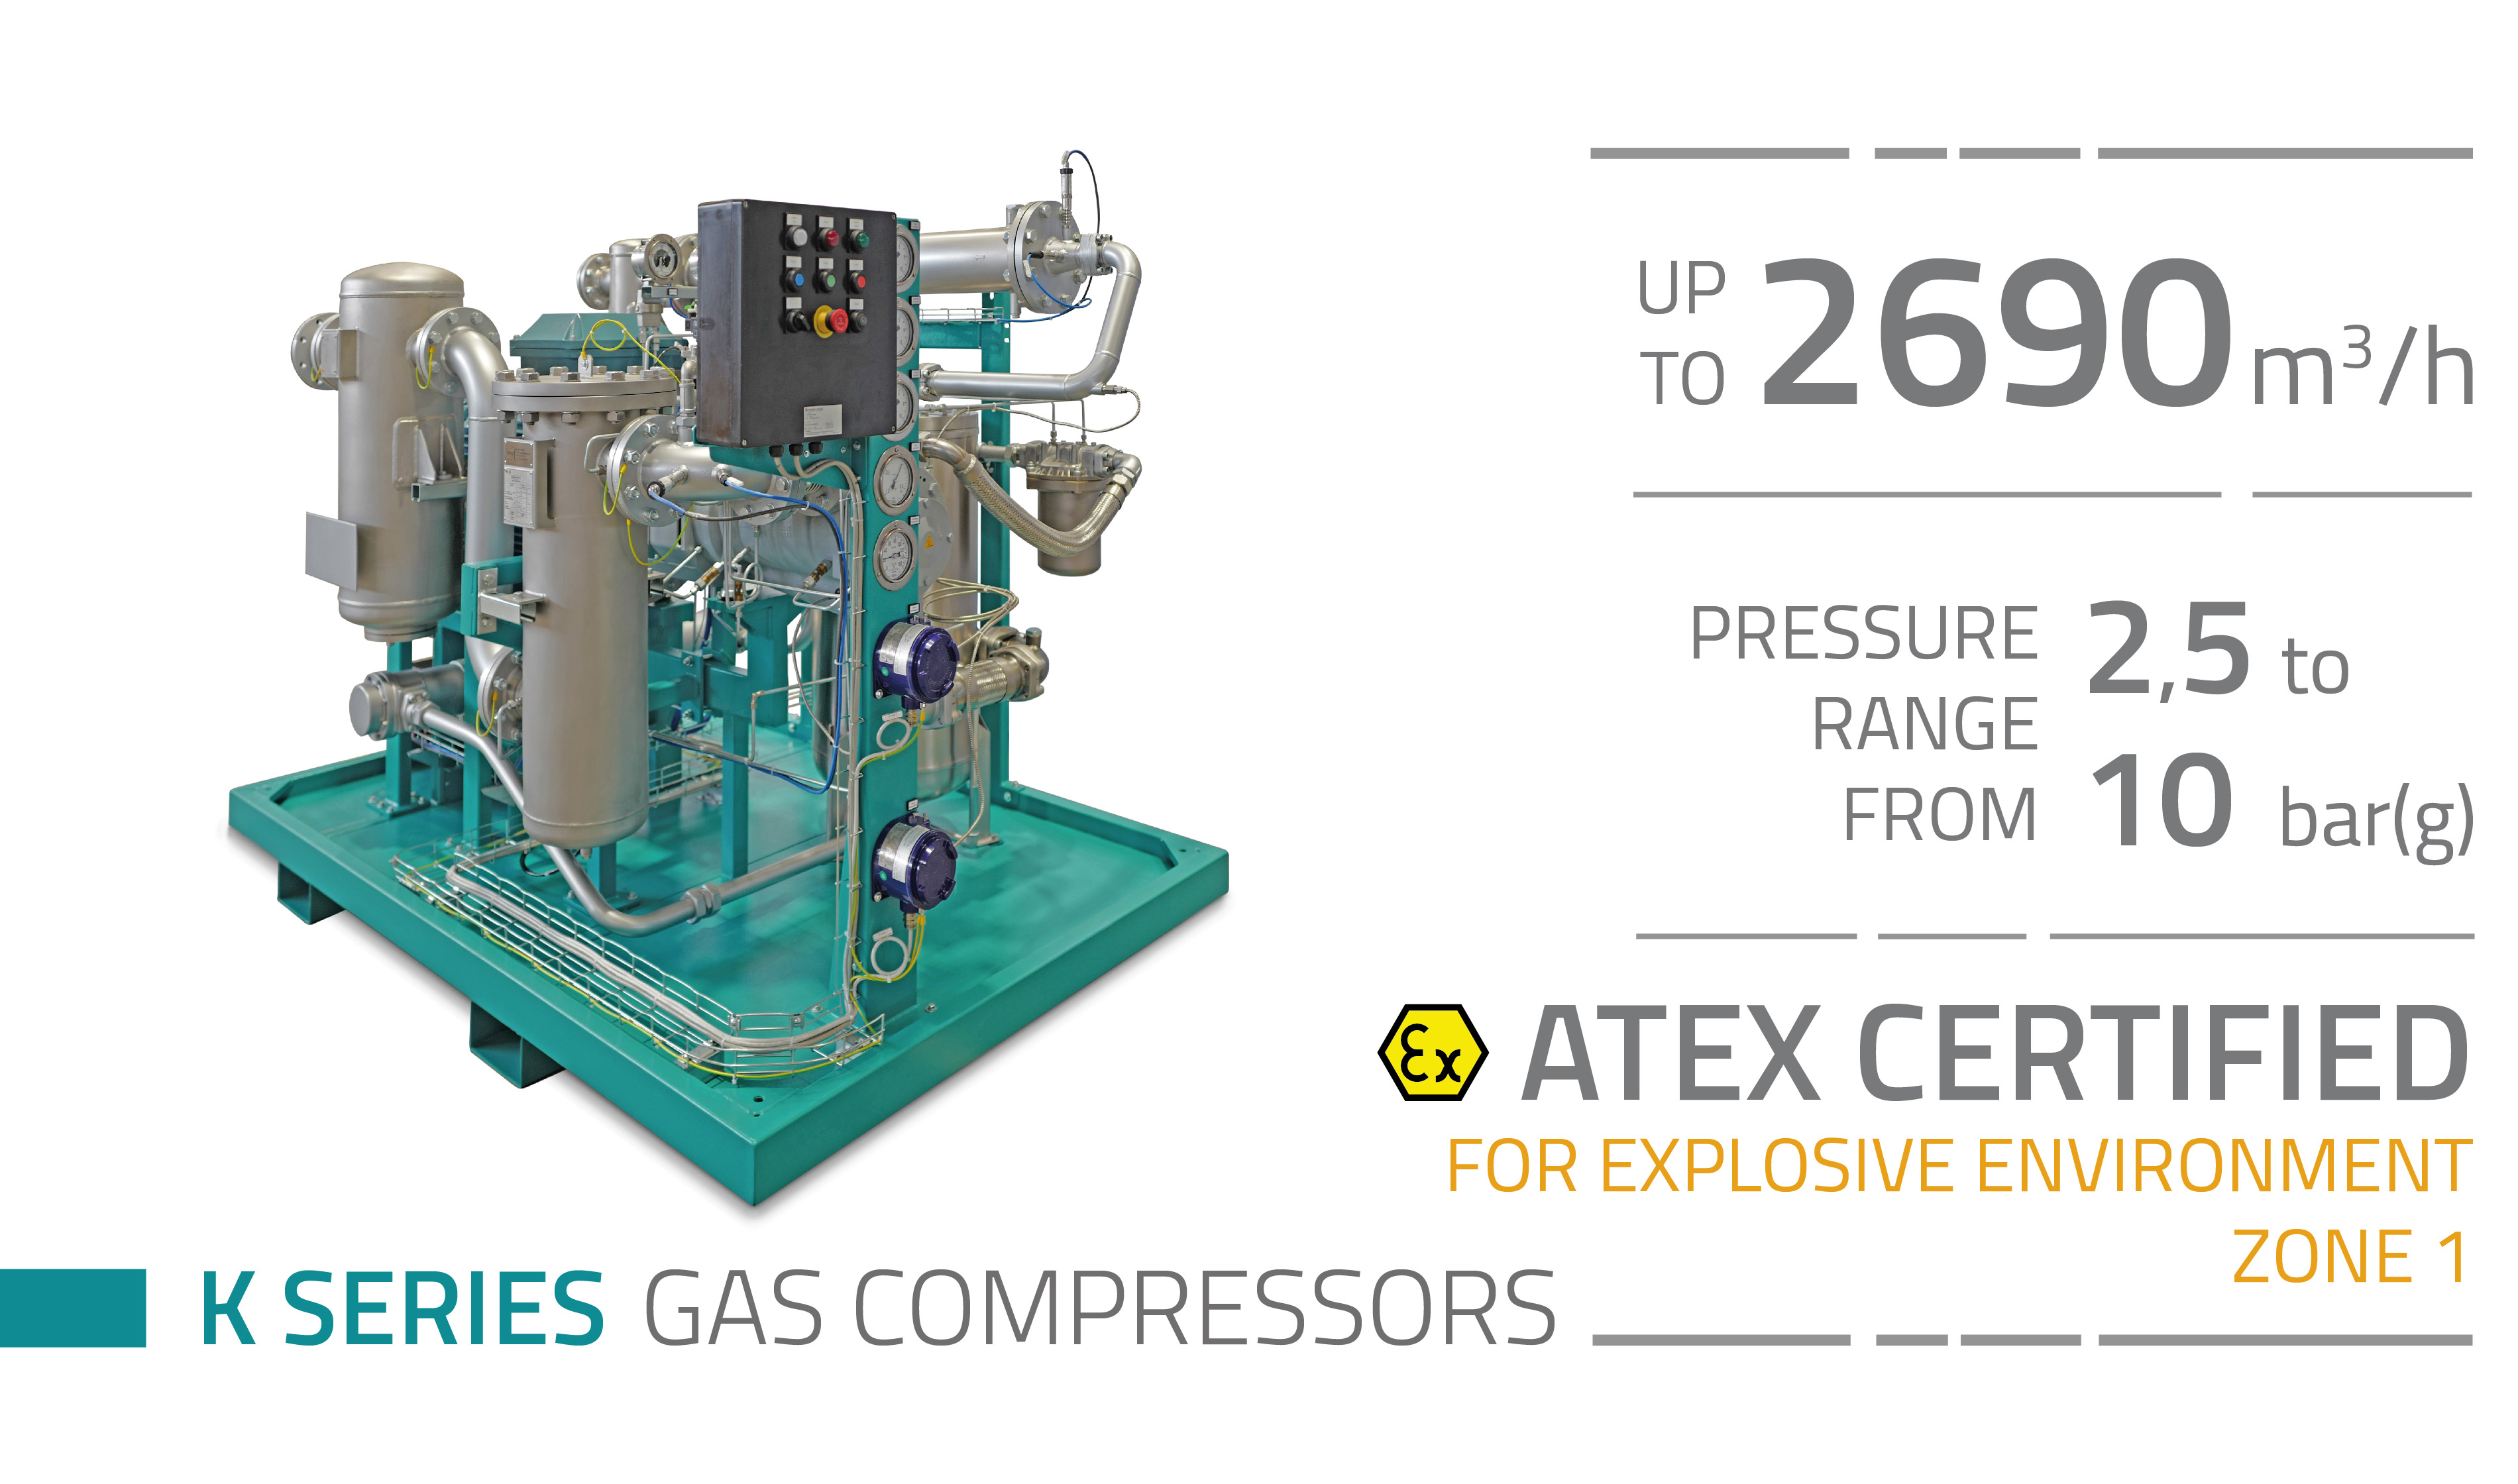 Pneumofore launches the Atex K Series Gas Compressors